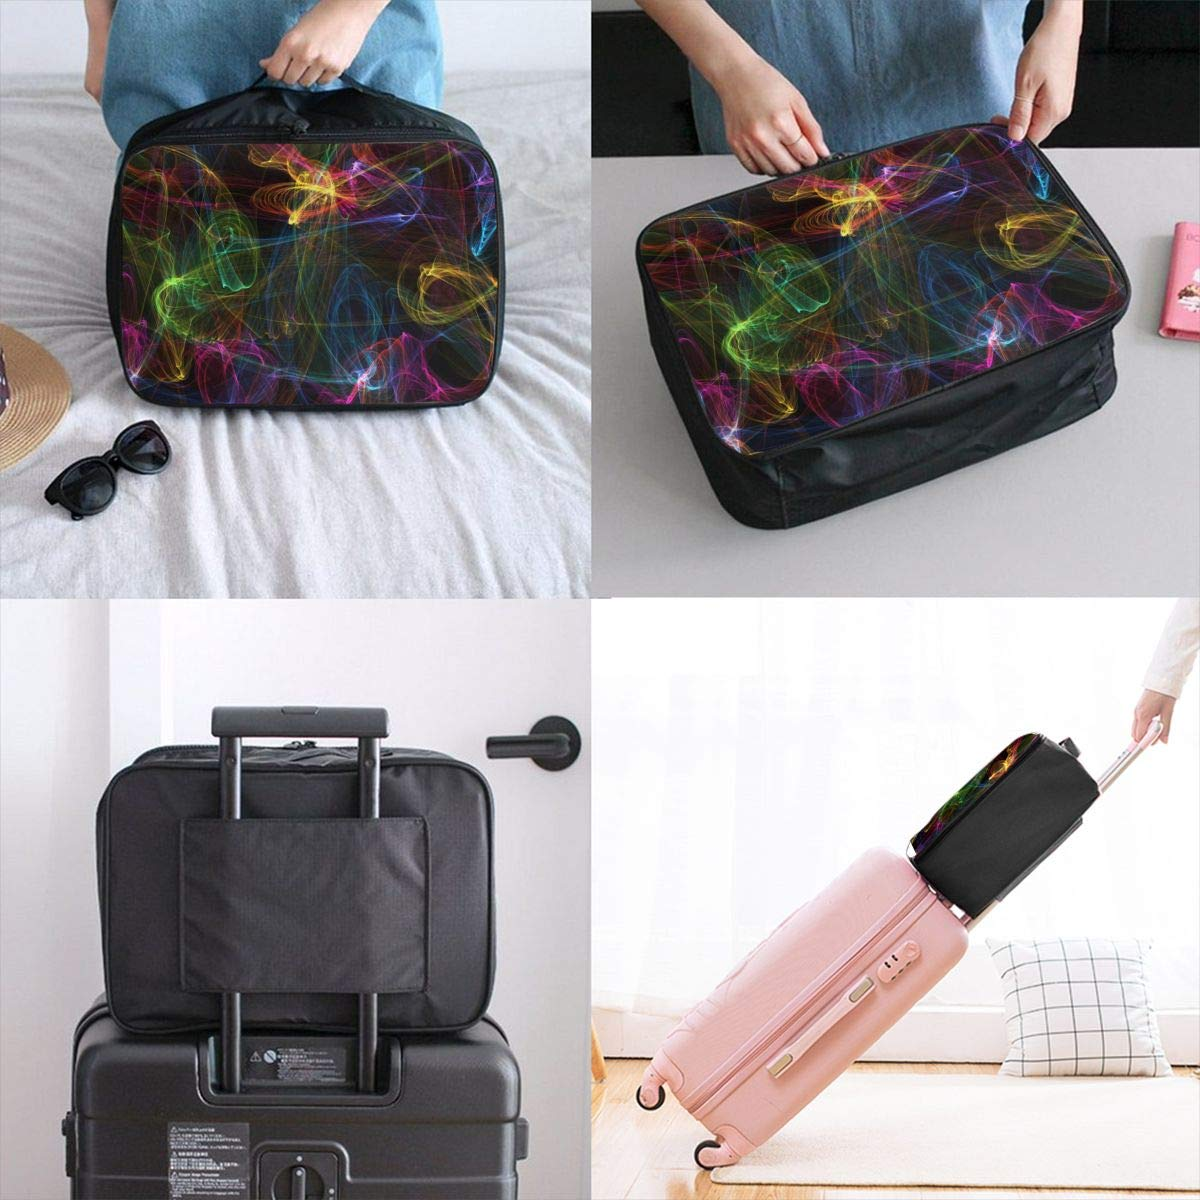 Glowing Creative Texture Art Travel Lightweight Waterproof Foldable Storage Carry Luggage Large Capacity Portable Luggage Bag Duffel Bag